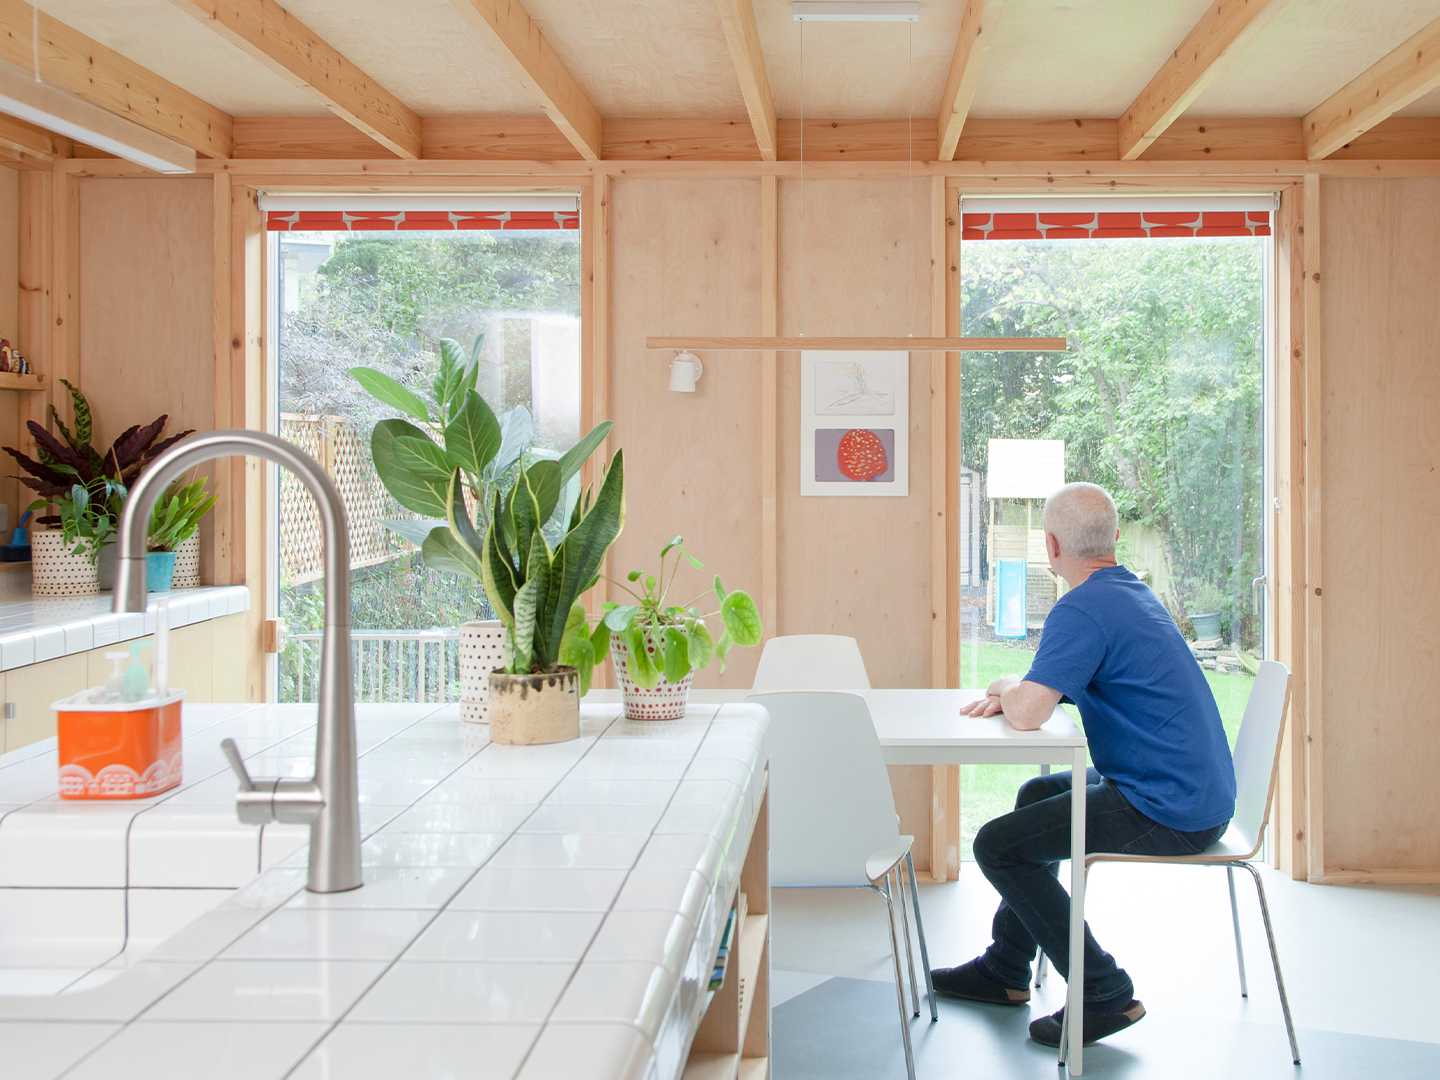 Don't Move, Improve! How to design a healthy home